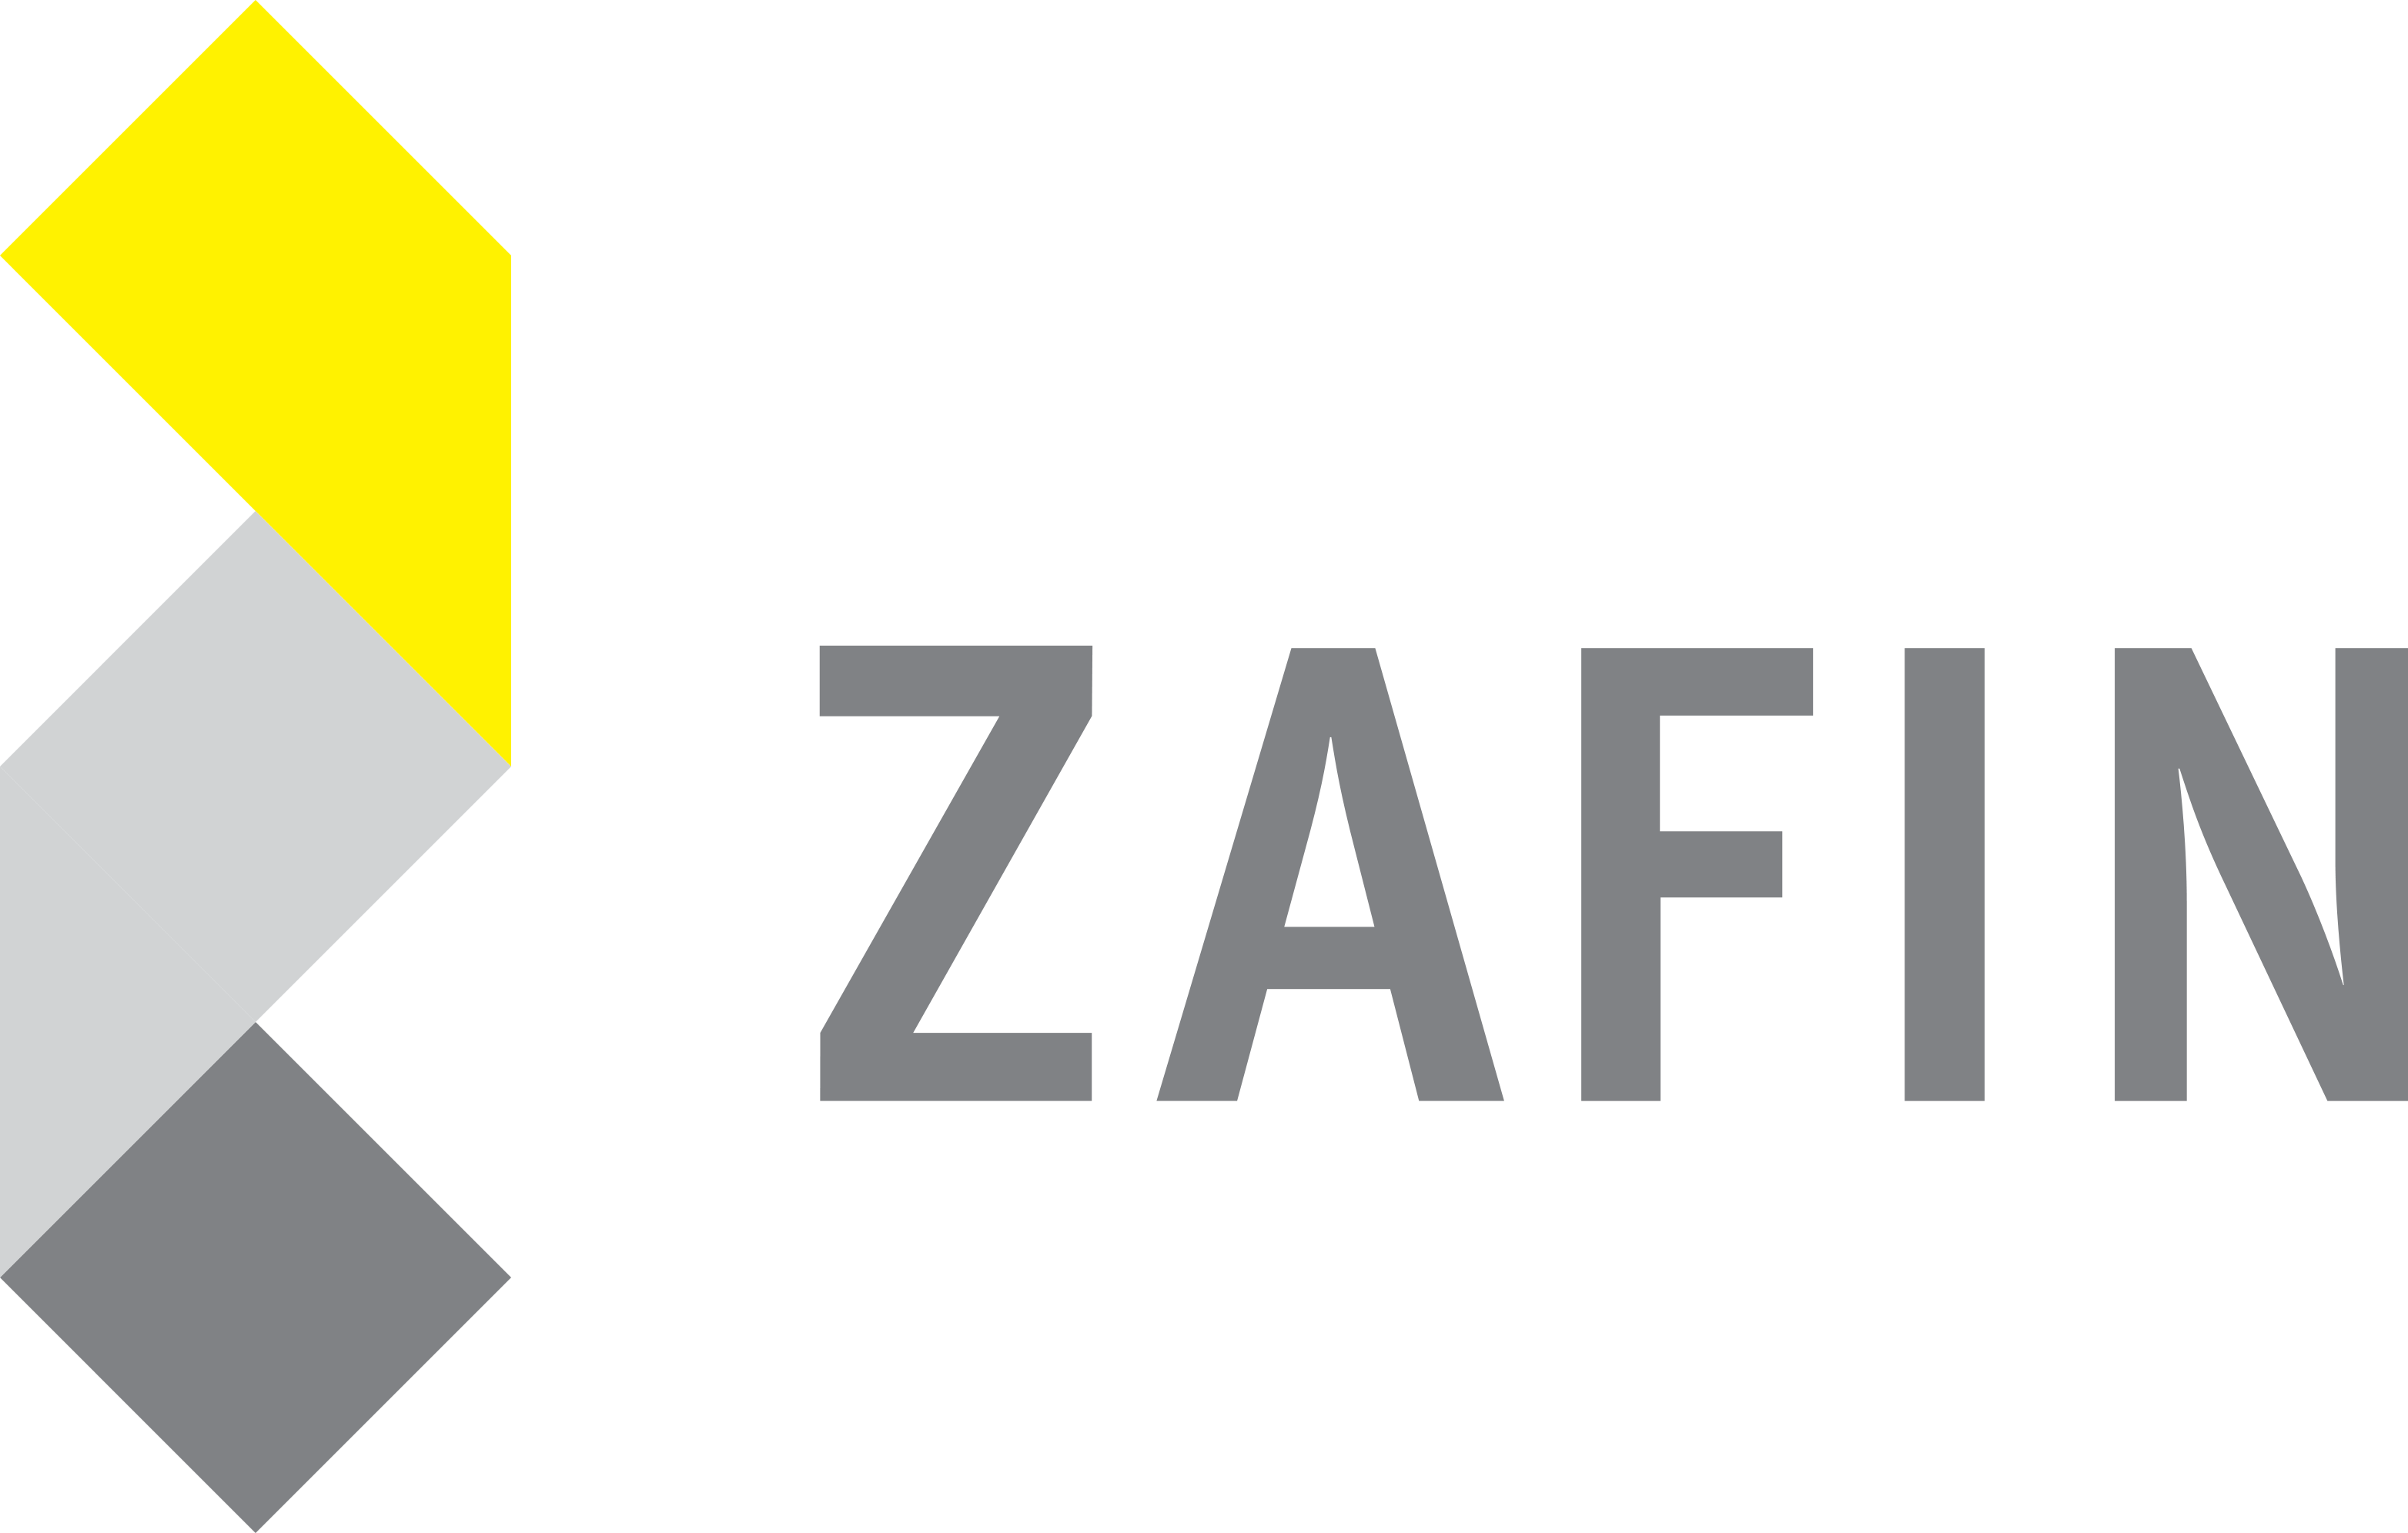 Zafin Named to the Deloitte Technology Fast 50™ and Fast 500™ Lists